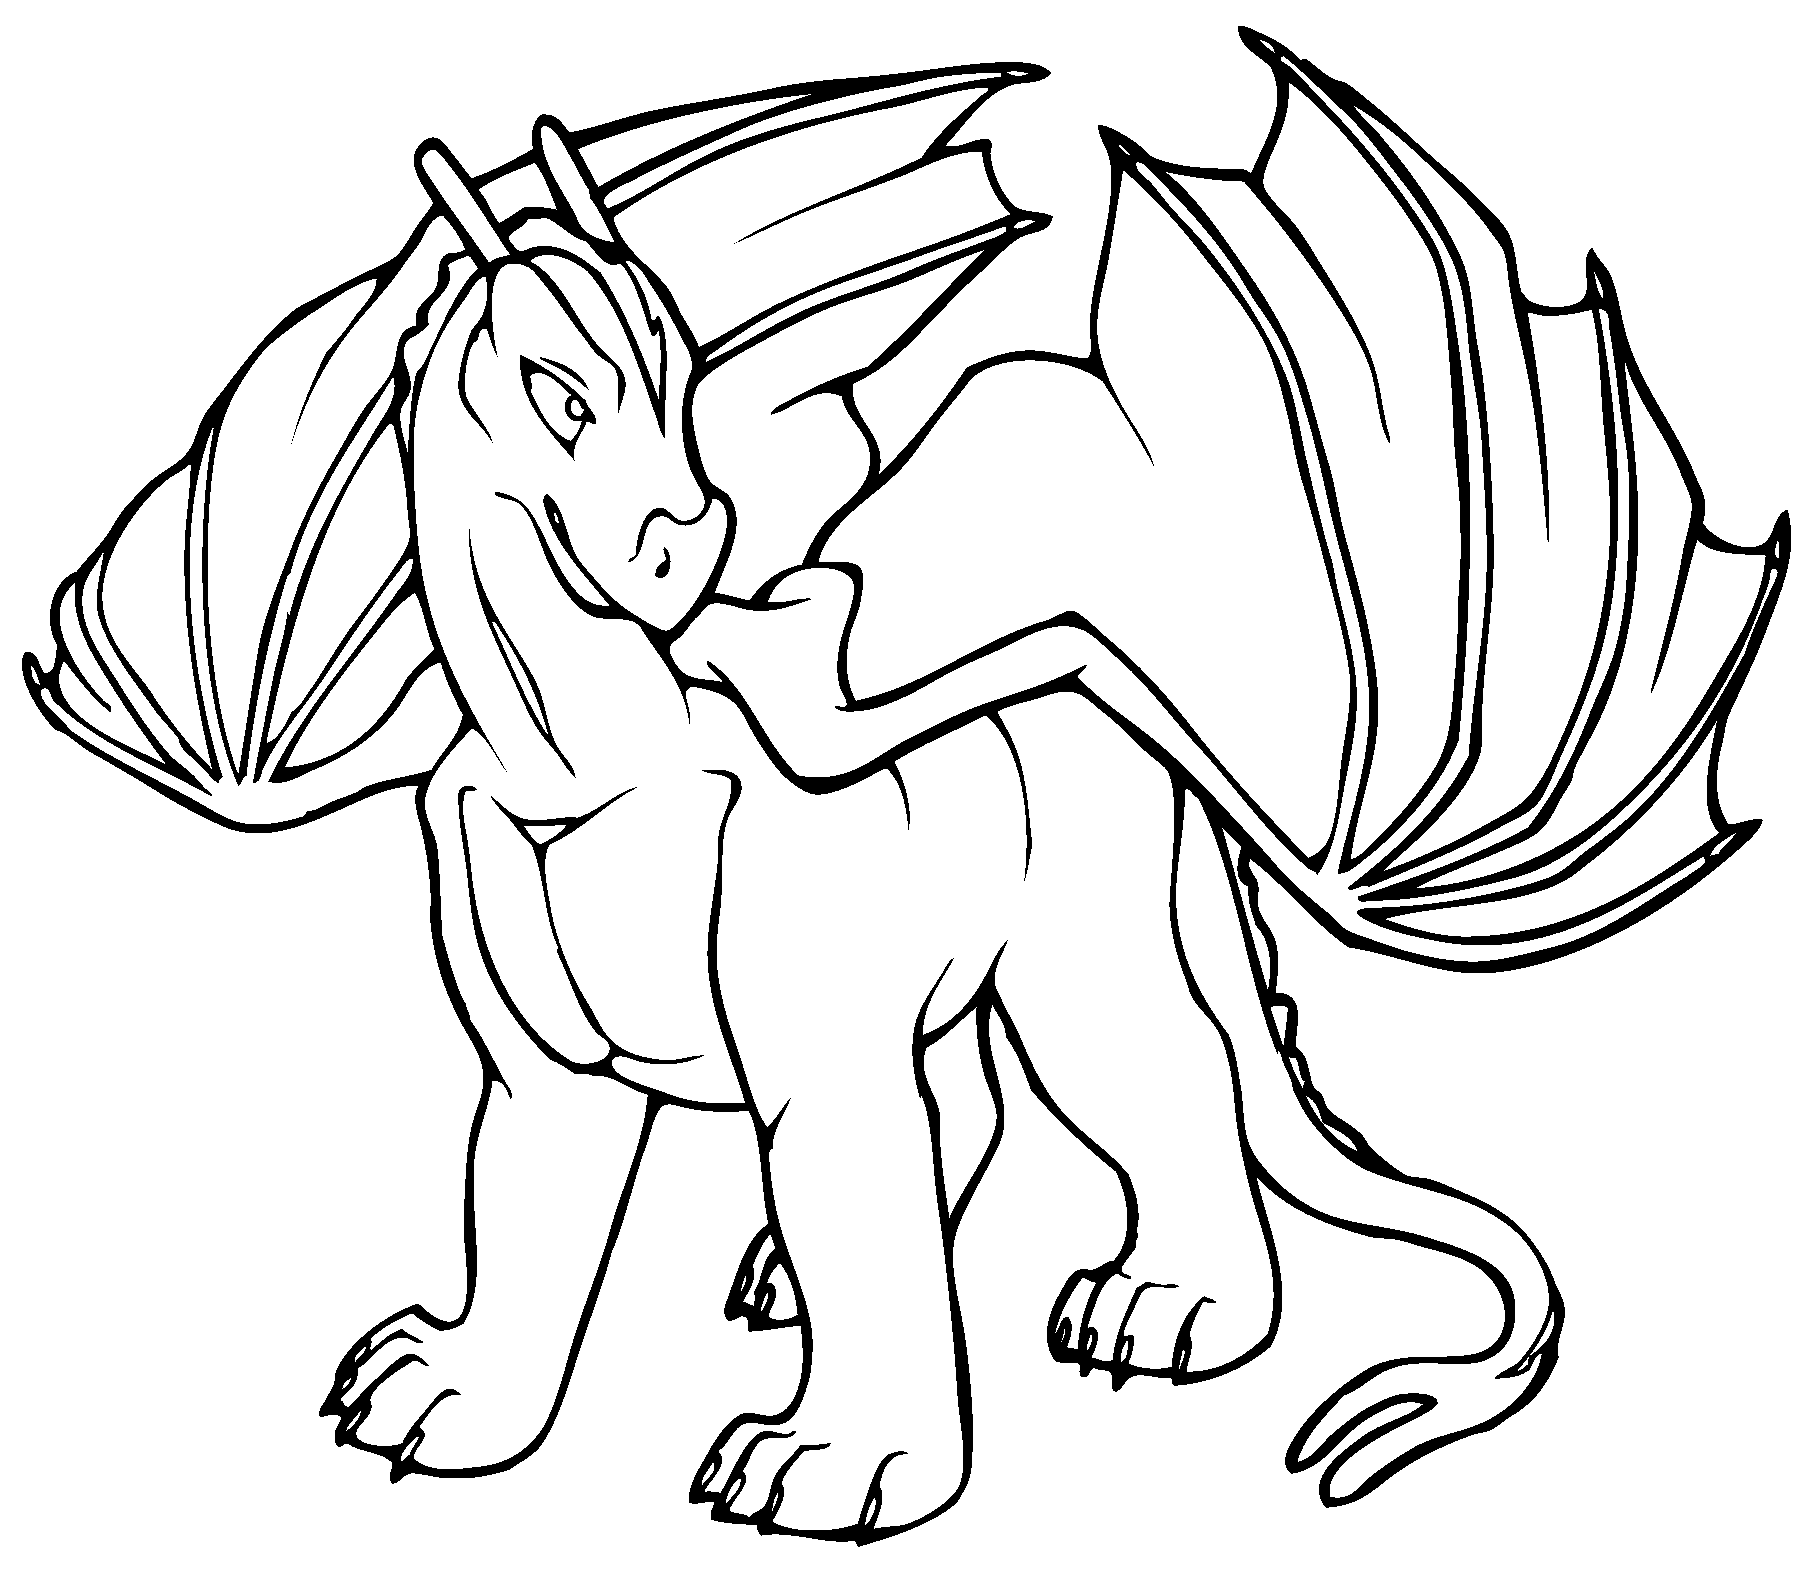 dragon coloring pages to print color the dragon coloring pages in websites pages print dragon coloring to